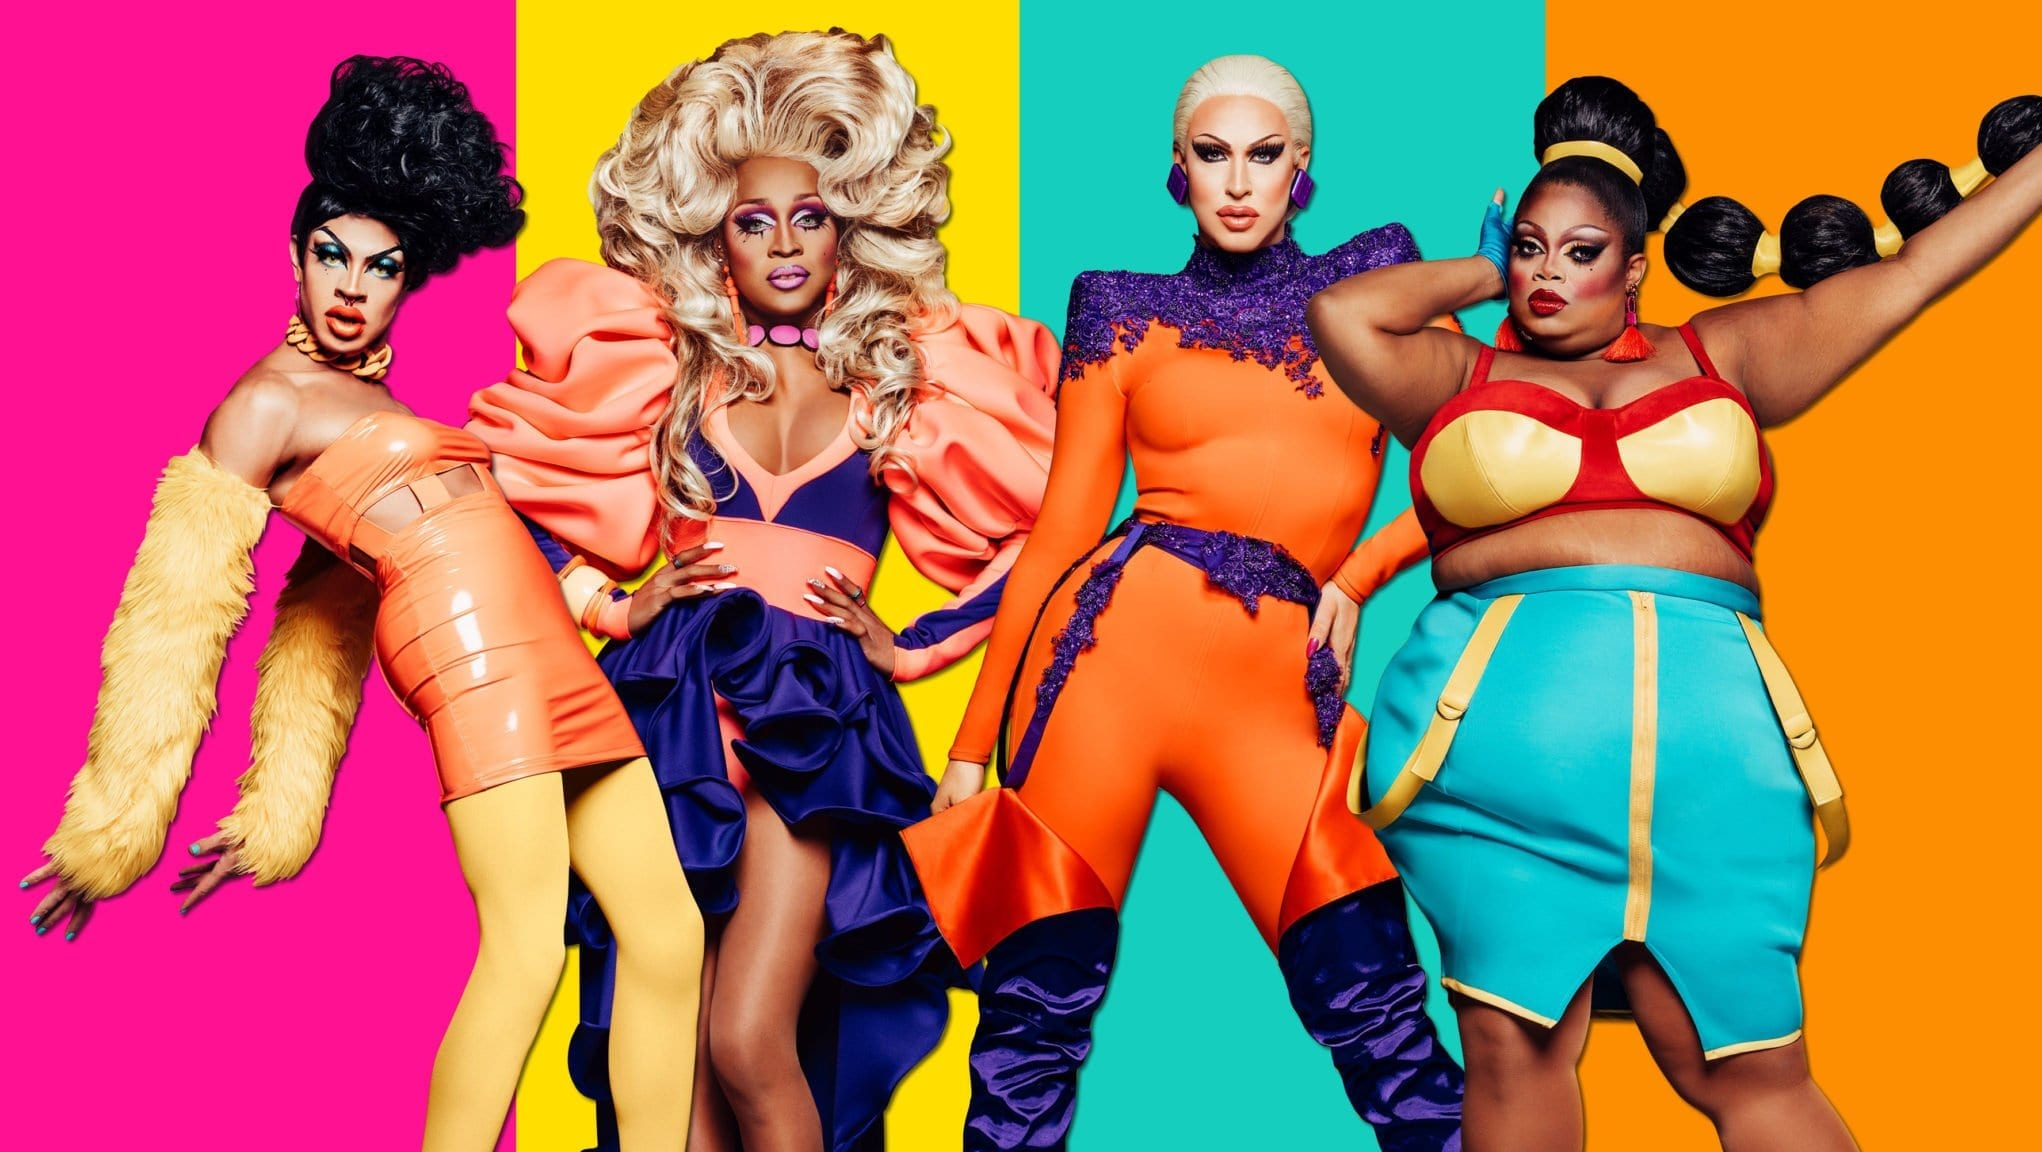 Saying goodbye to the blandest RuPaul's Drag Race yet